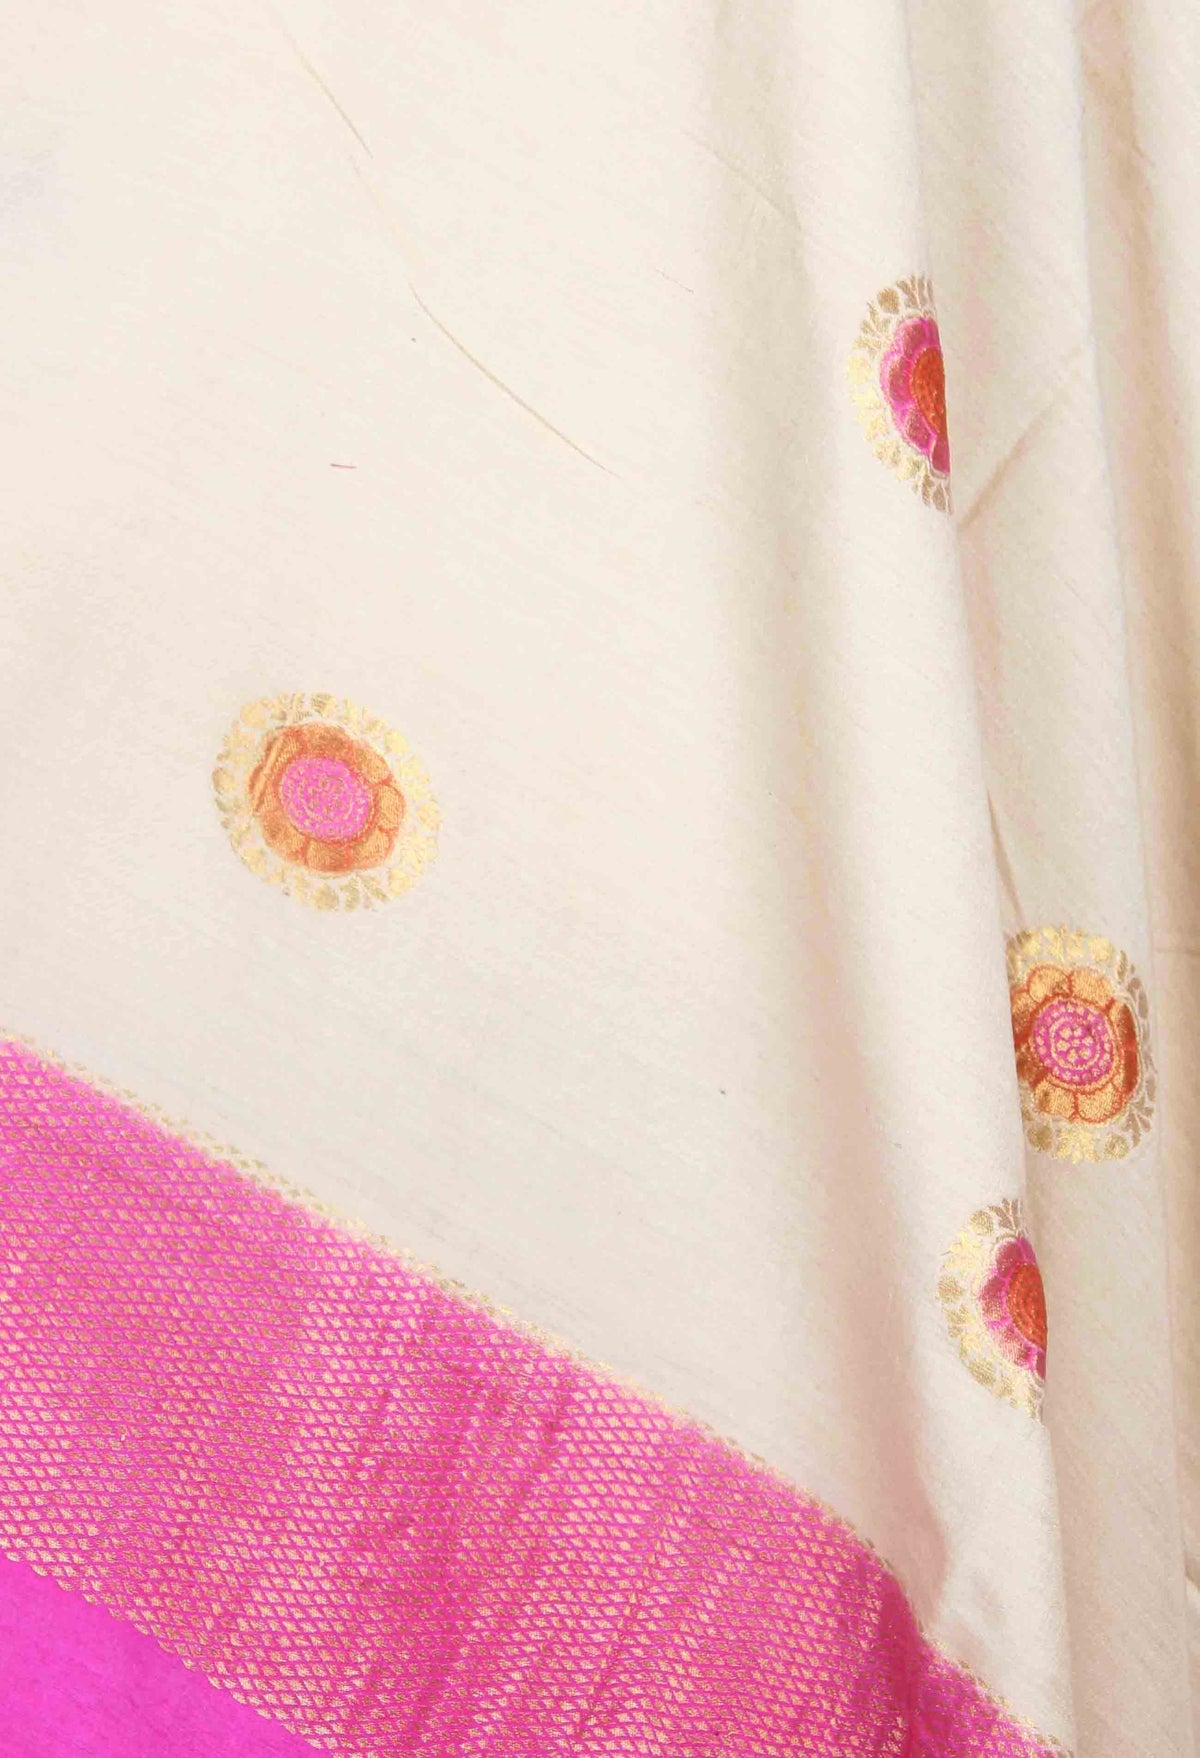 Off White Muga Silk Handwoven Banarasi Dupatta with round motifs (2) closeup